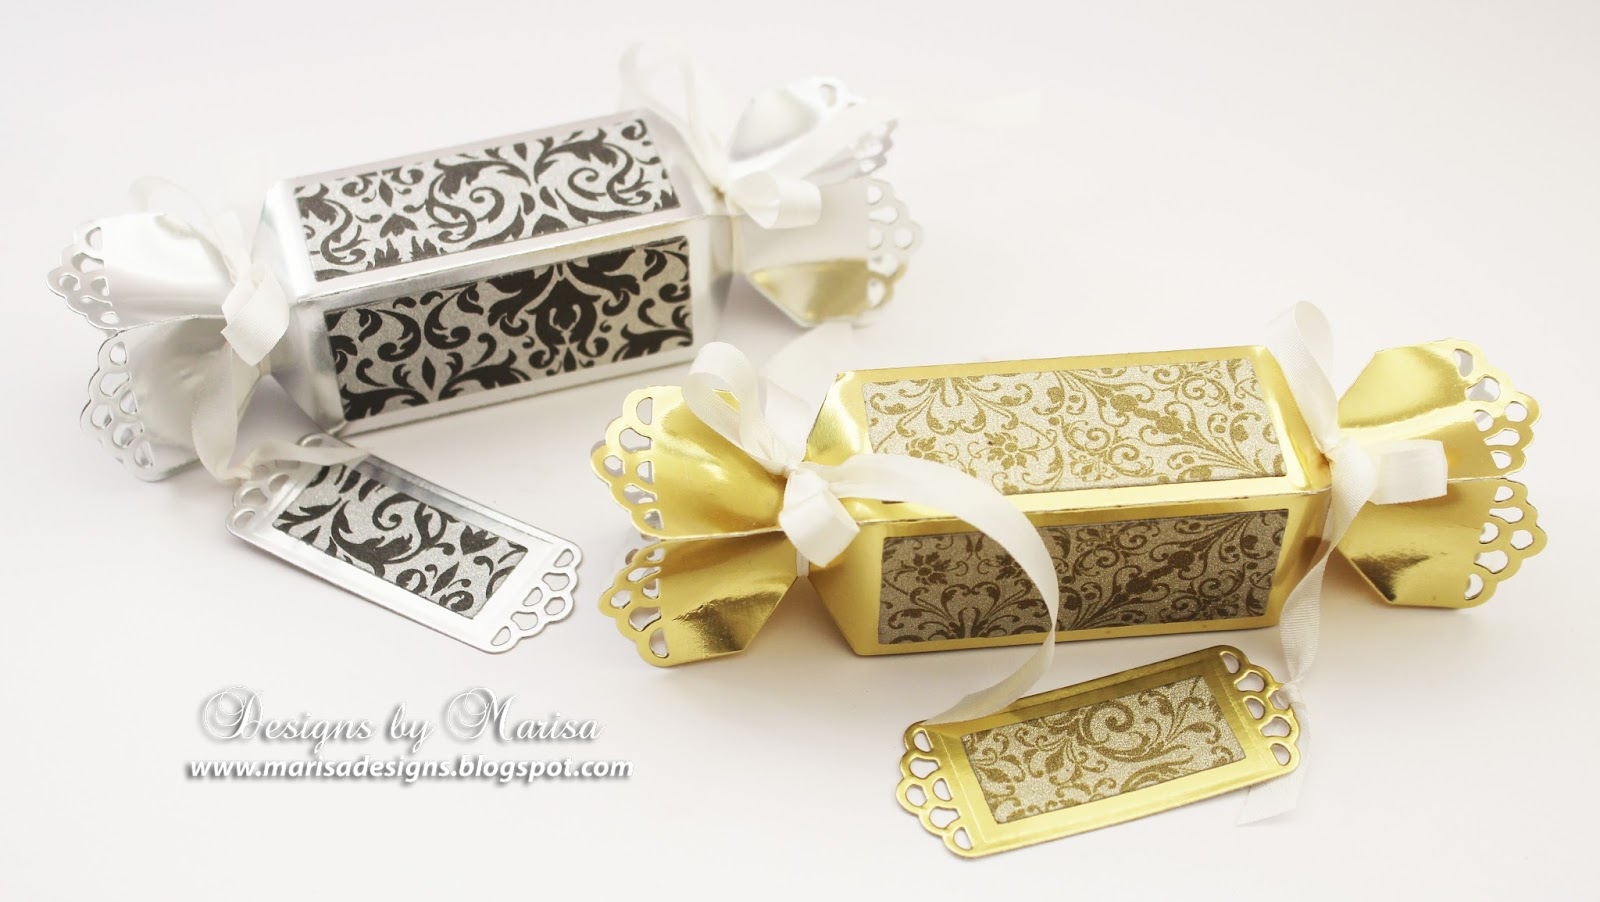 Designs by Marisa: Spellbinders Party Favor Boxes for the Holidays